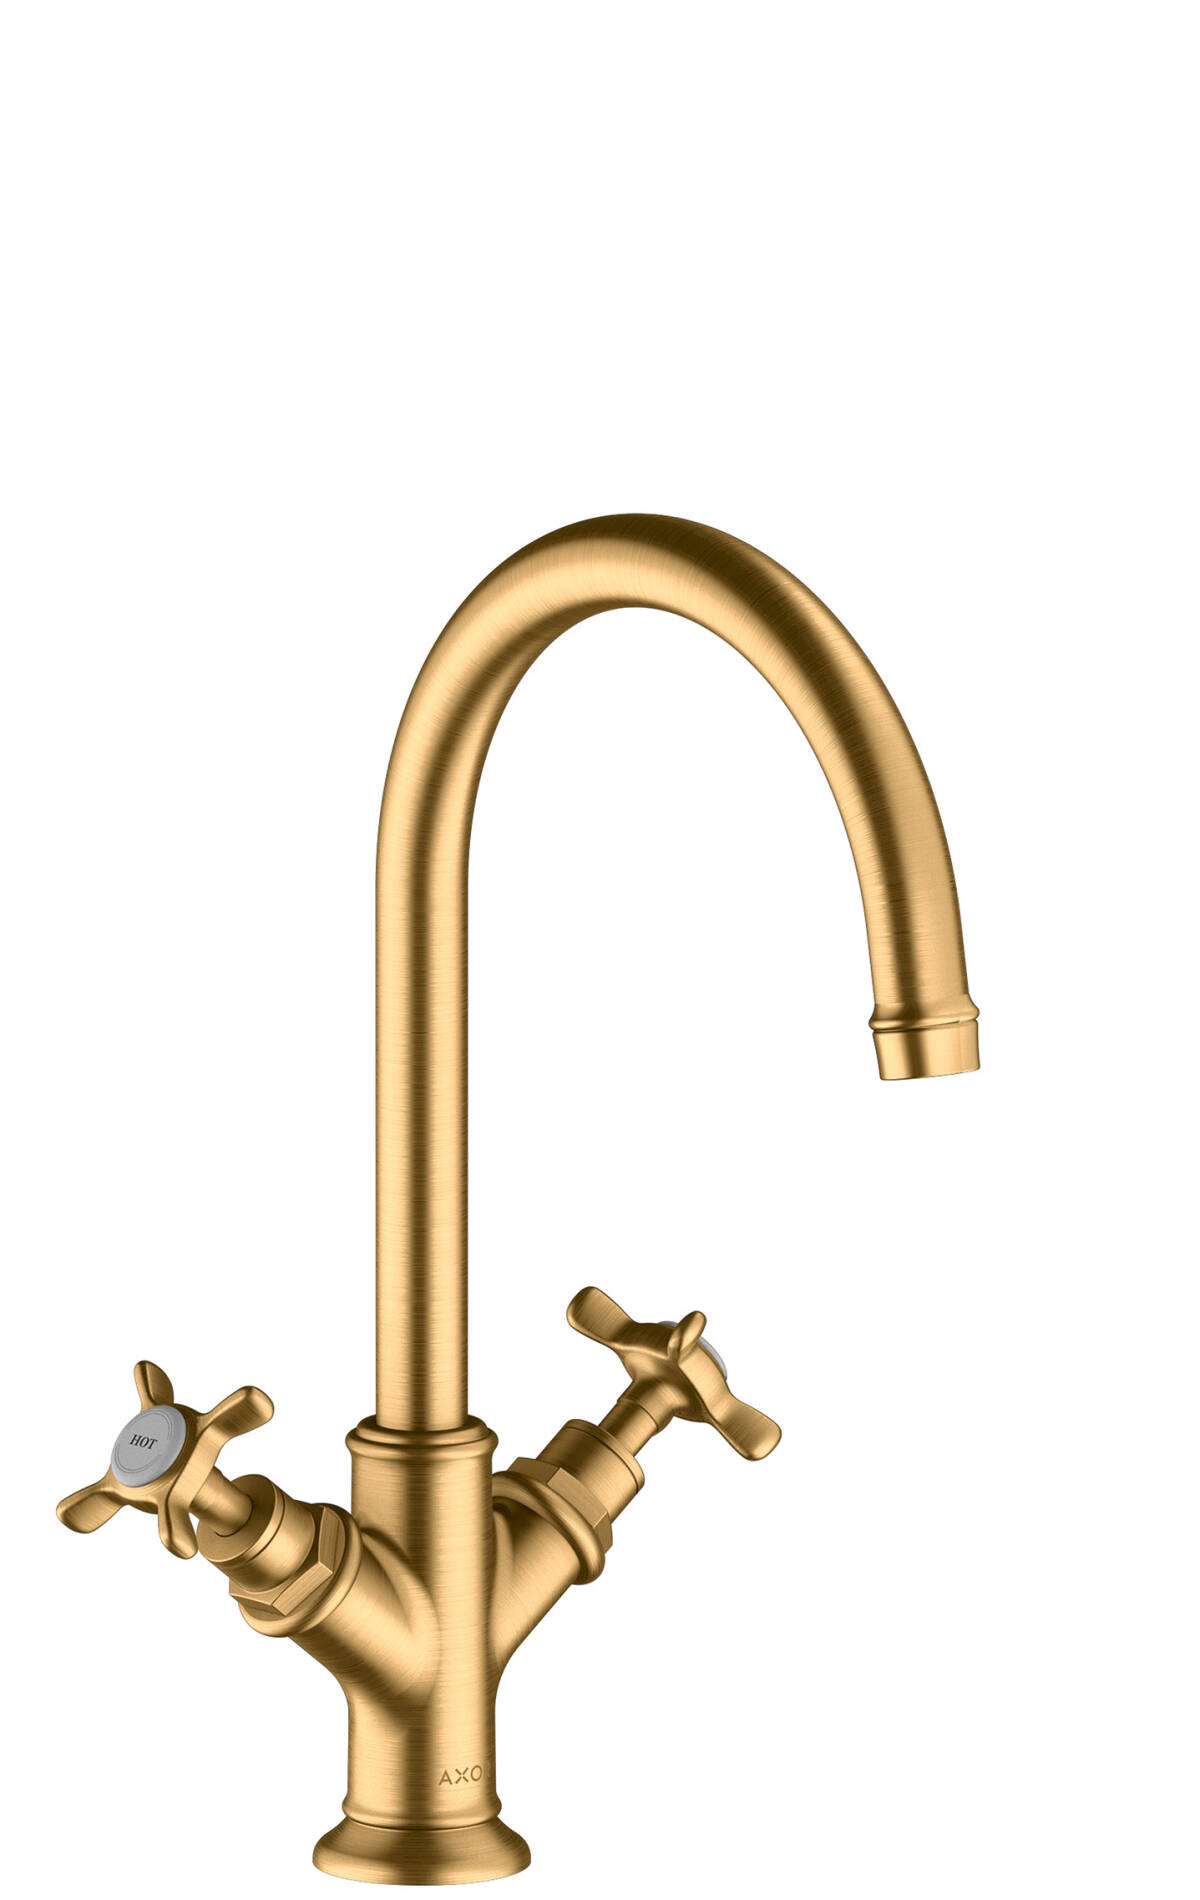 2-handle basin mixer 210 with cross handles and waste set, Brushed Brass, 16506950